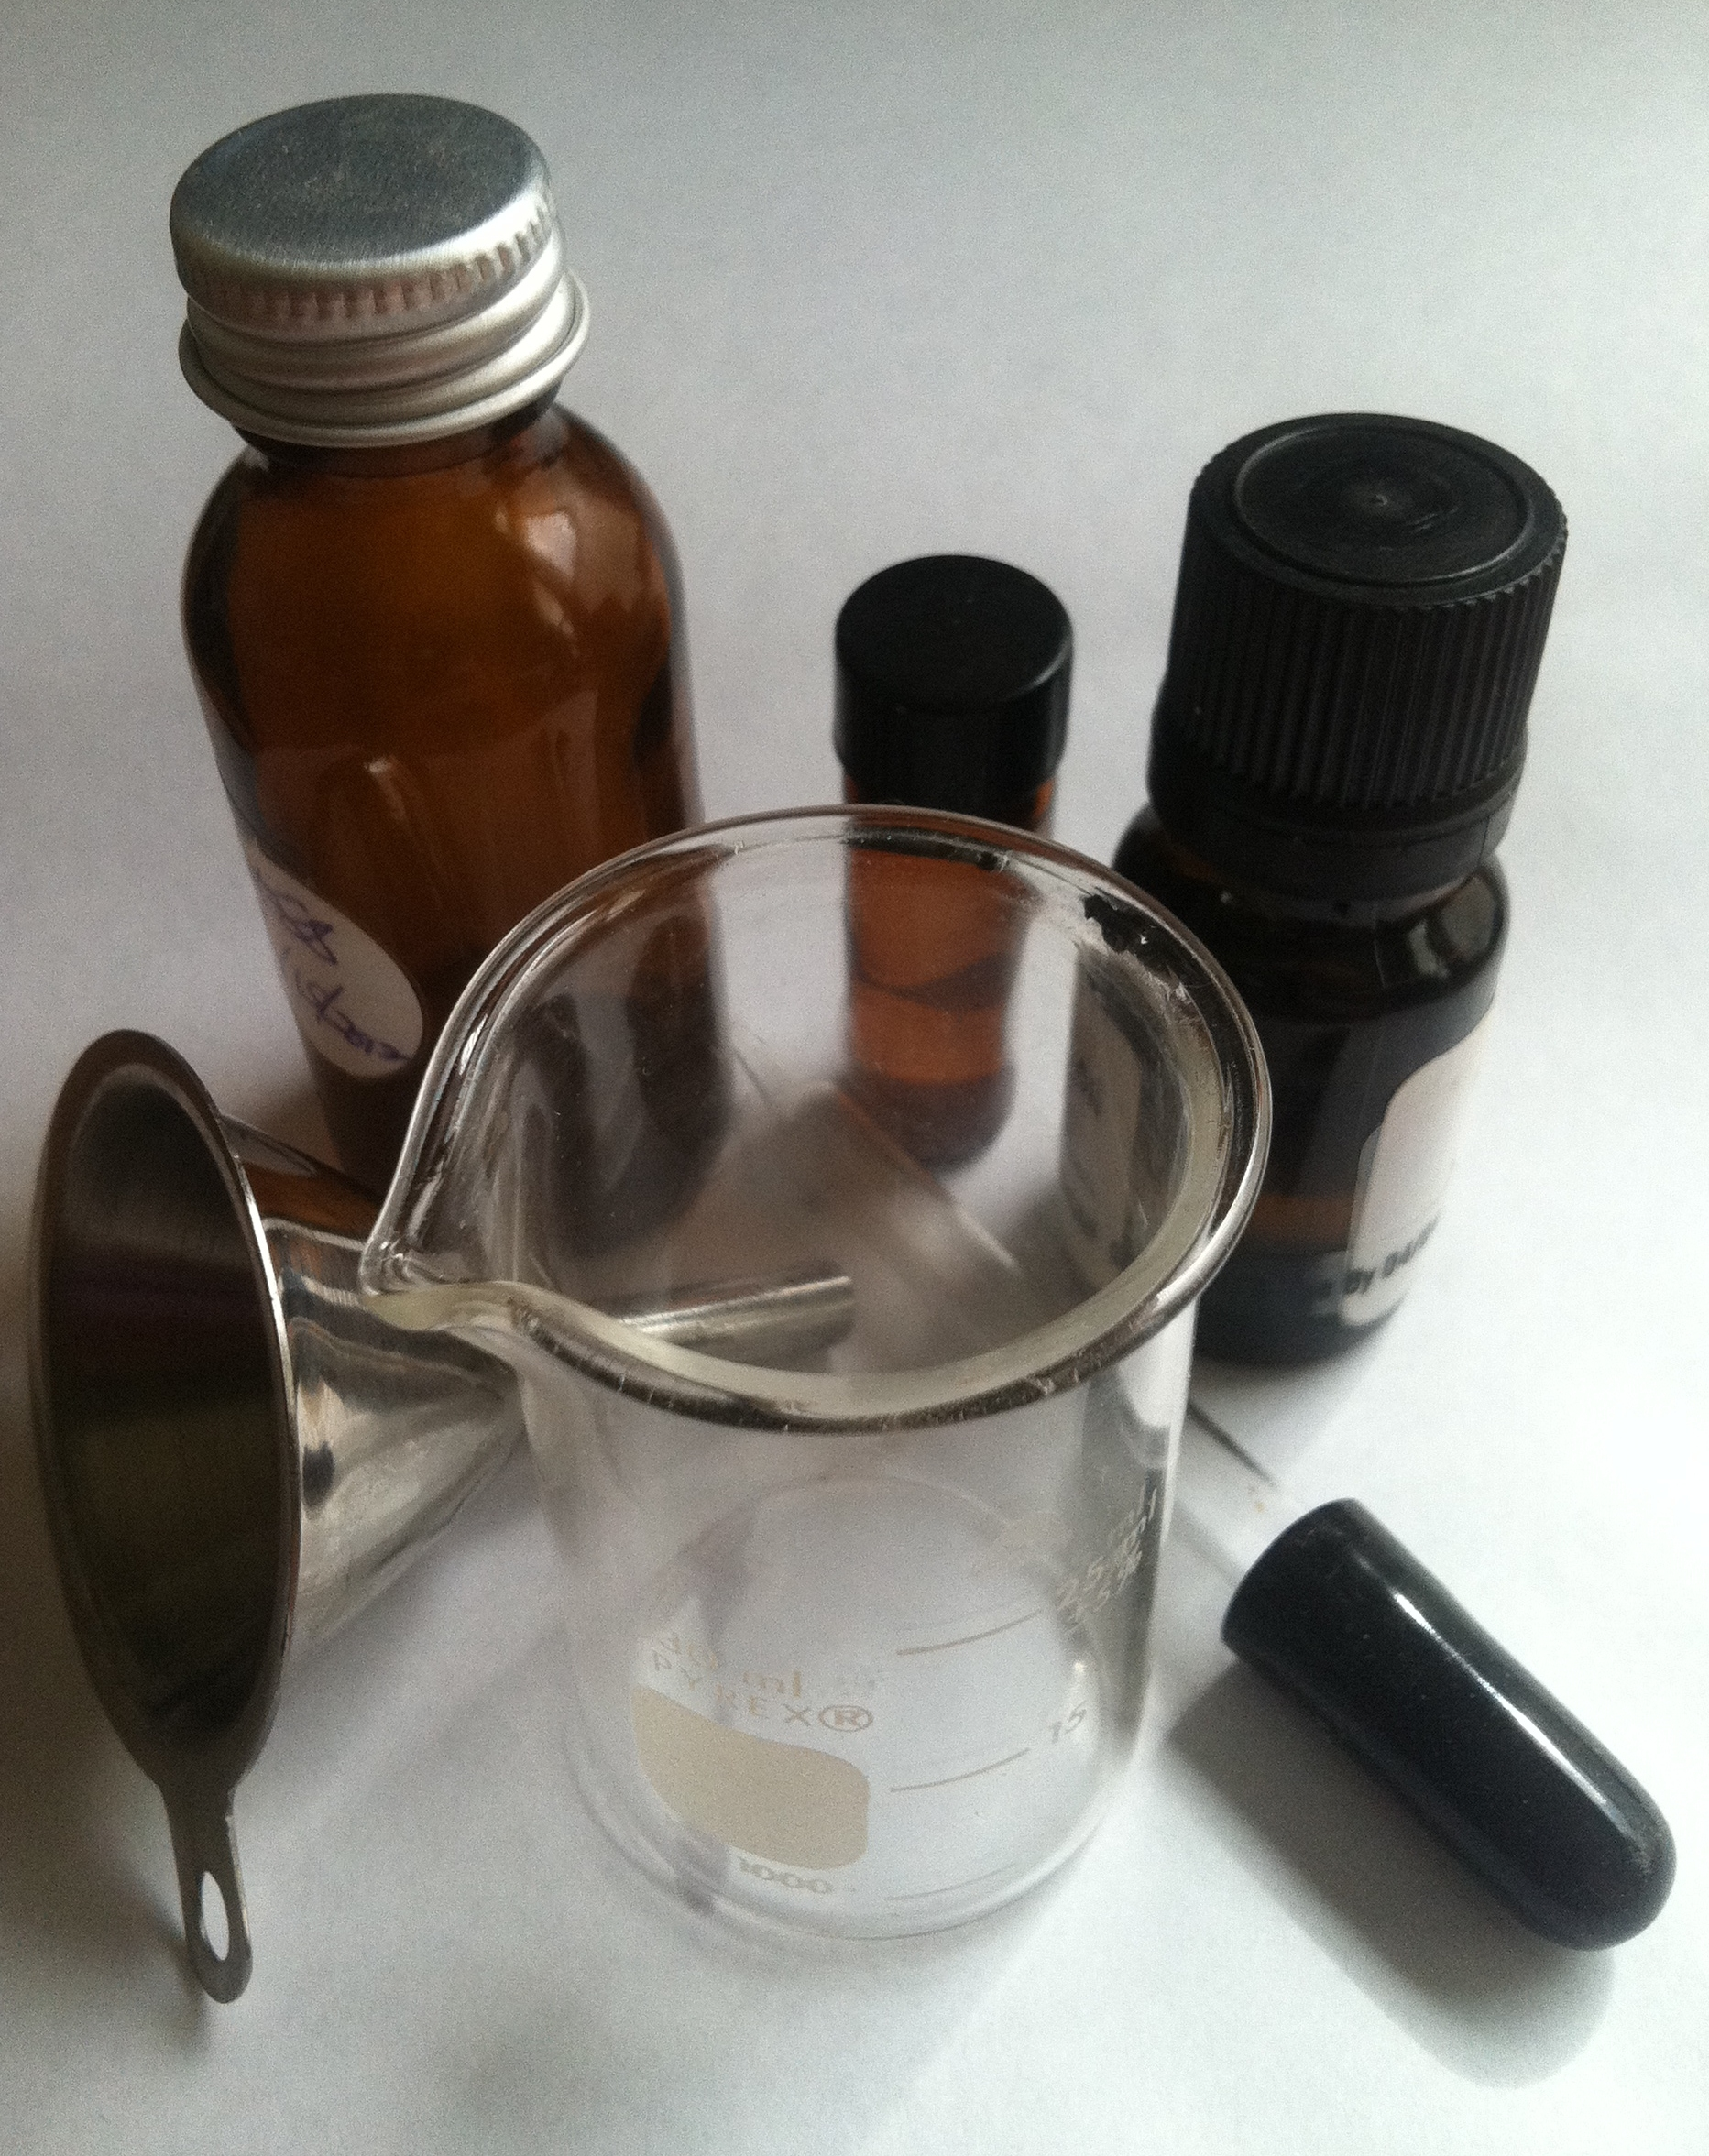 how to make perfume at home for business